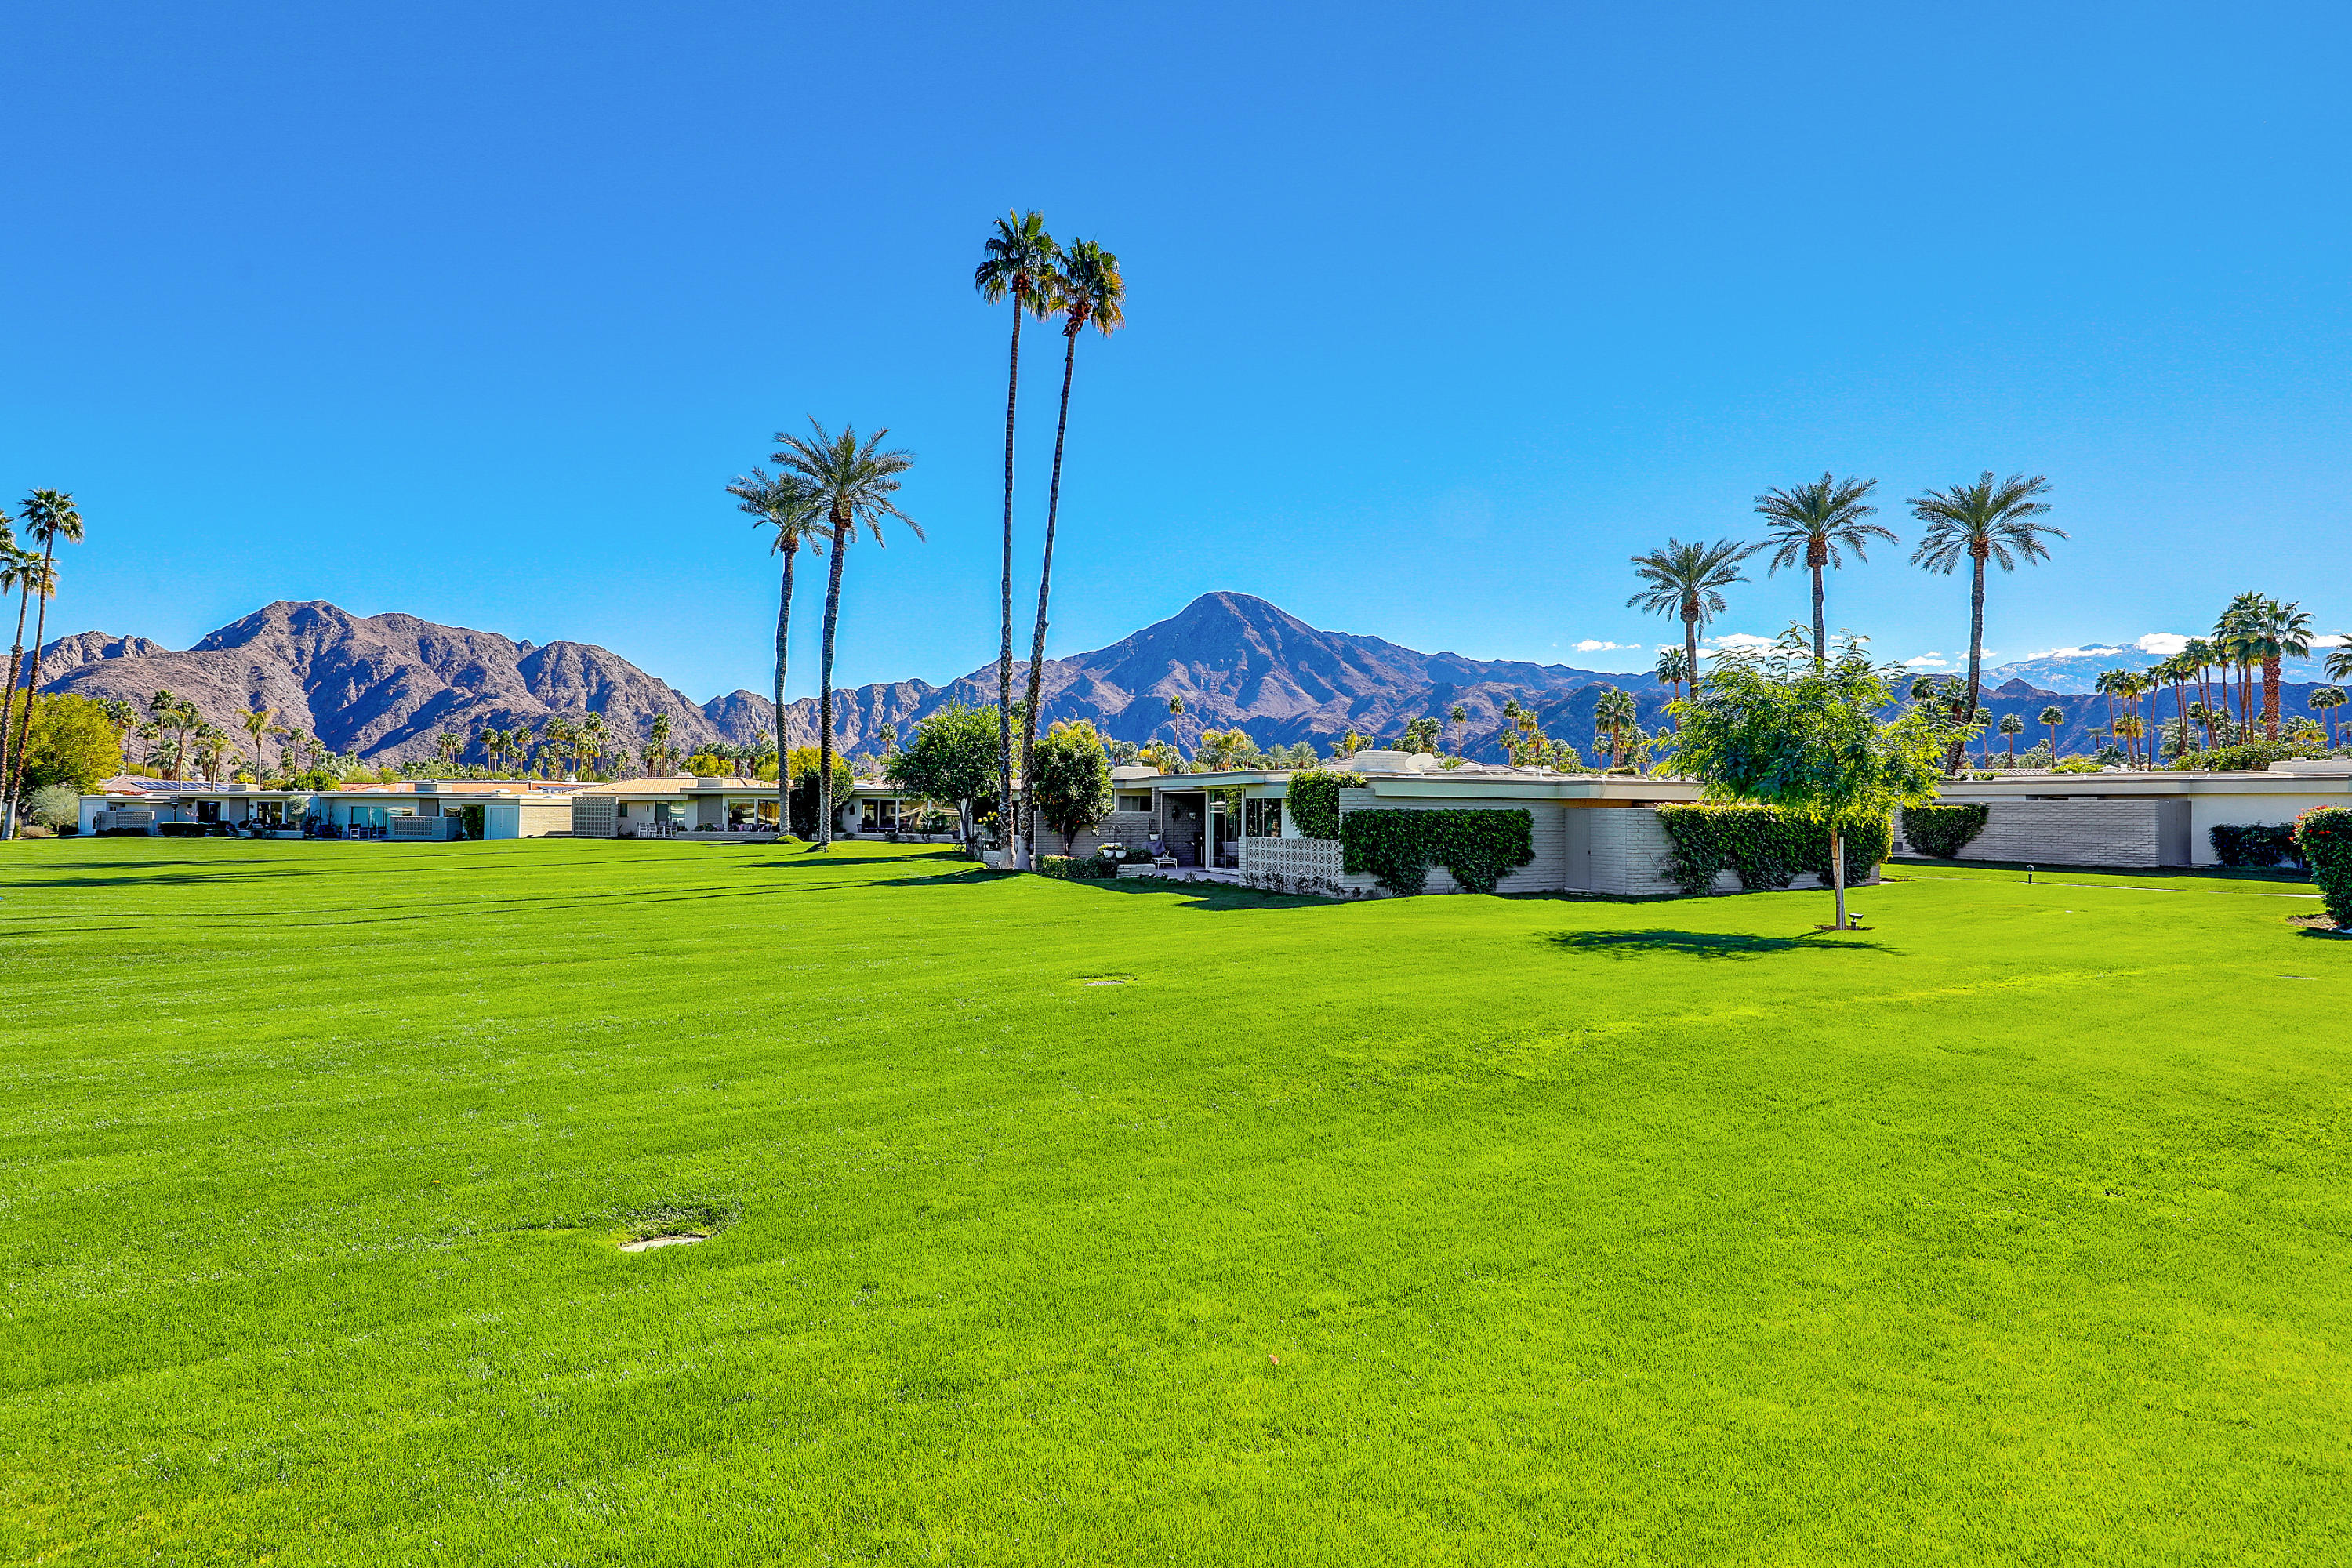 Beautiful 3bedroom  Mid Century modern condo in the gated community of Casa Dorado. This beautiful condo faces east with greens and mountain views.